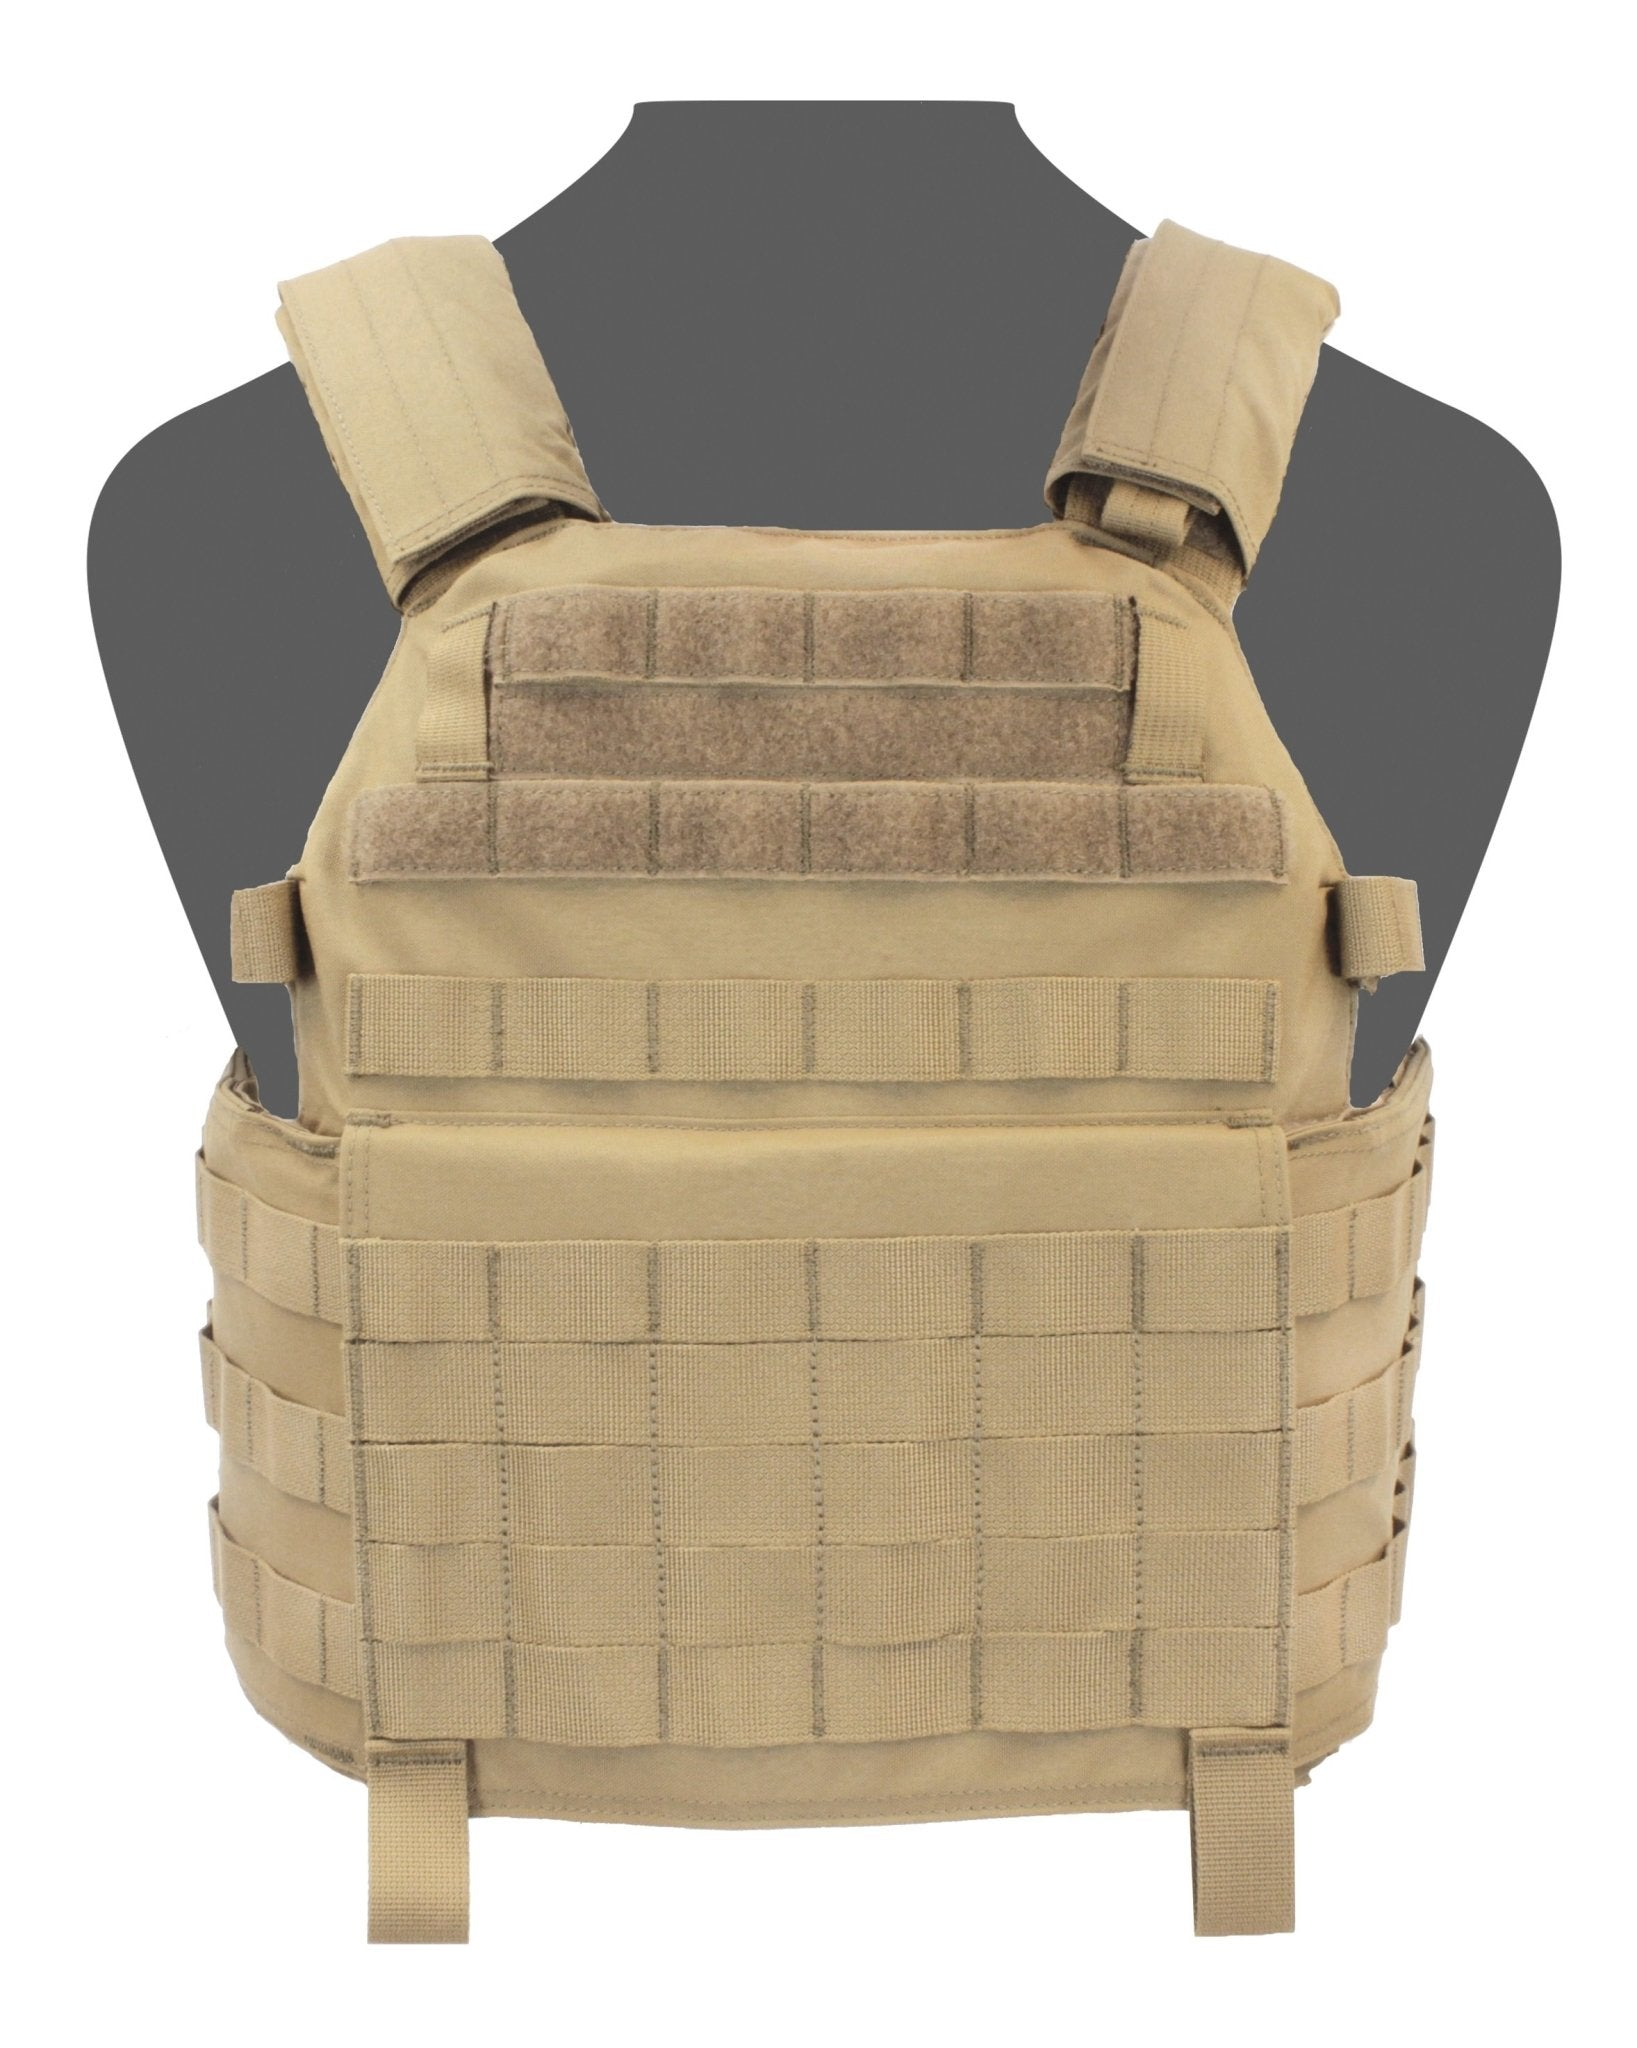 Warrior Assault Systems DCS Releasable Plate Carrier - CHK-SHIELD | Outdoor Army - Tactical Gear Shop